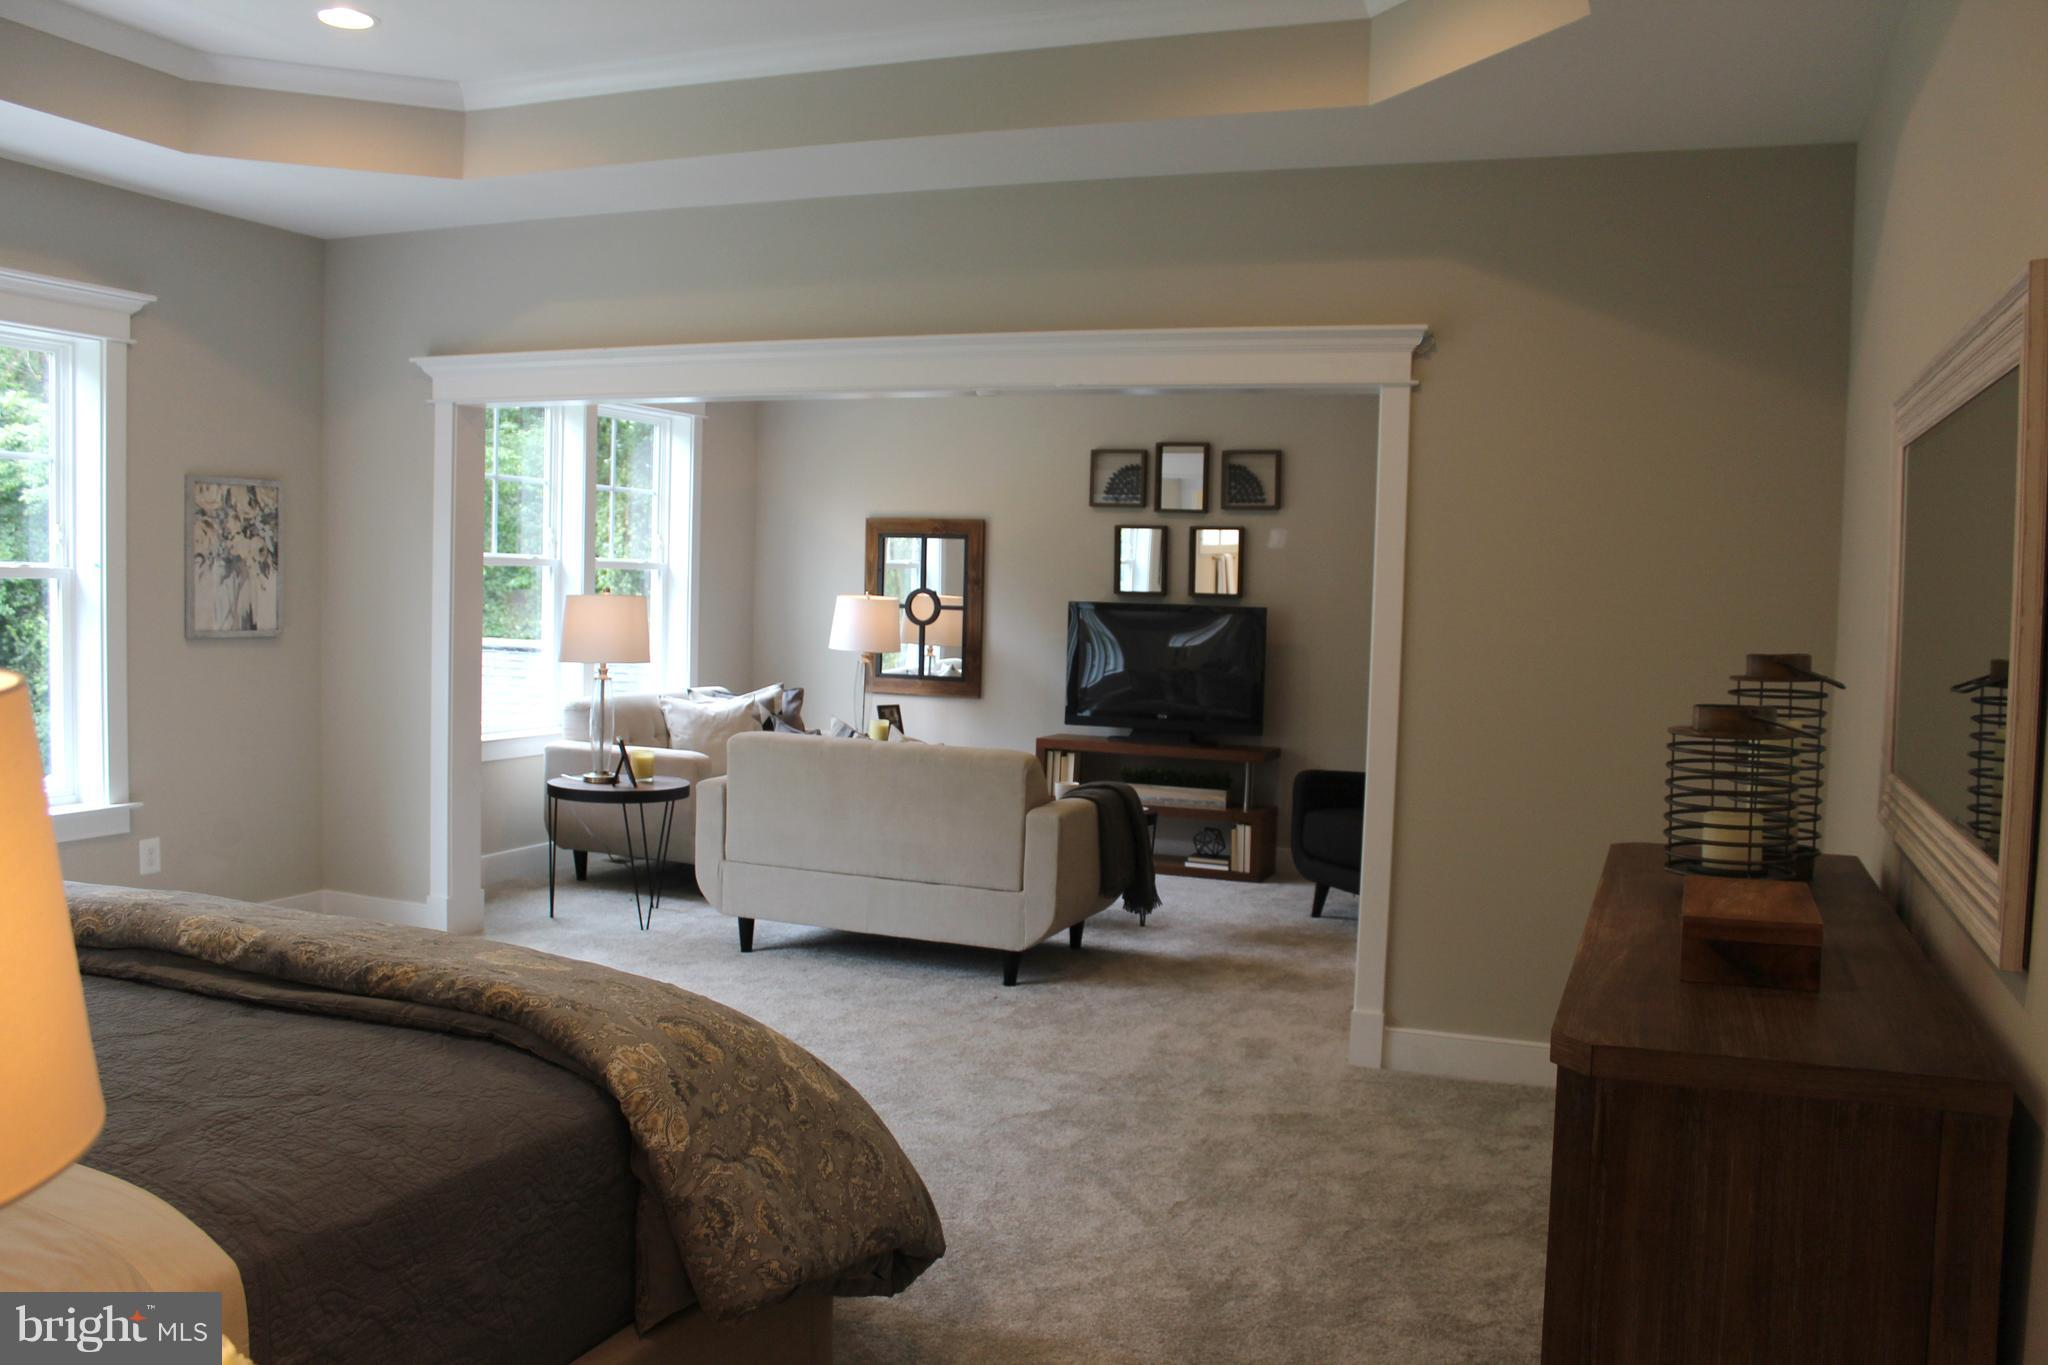 Fabulous 3122 Barkley Dr Fairfax Va 22031 1 650 000 Mls Gmtry Best Dining Table And Chair Ideas Images Gmtryco